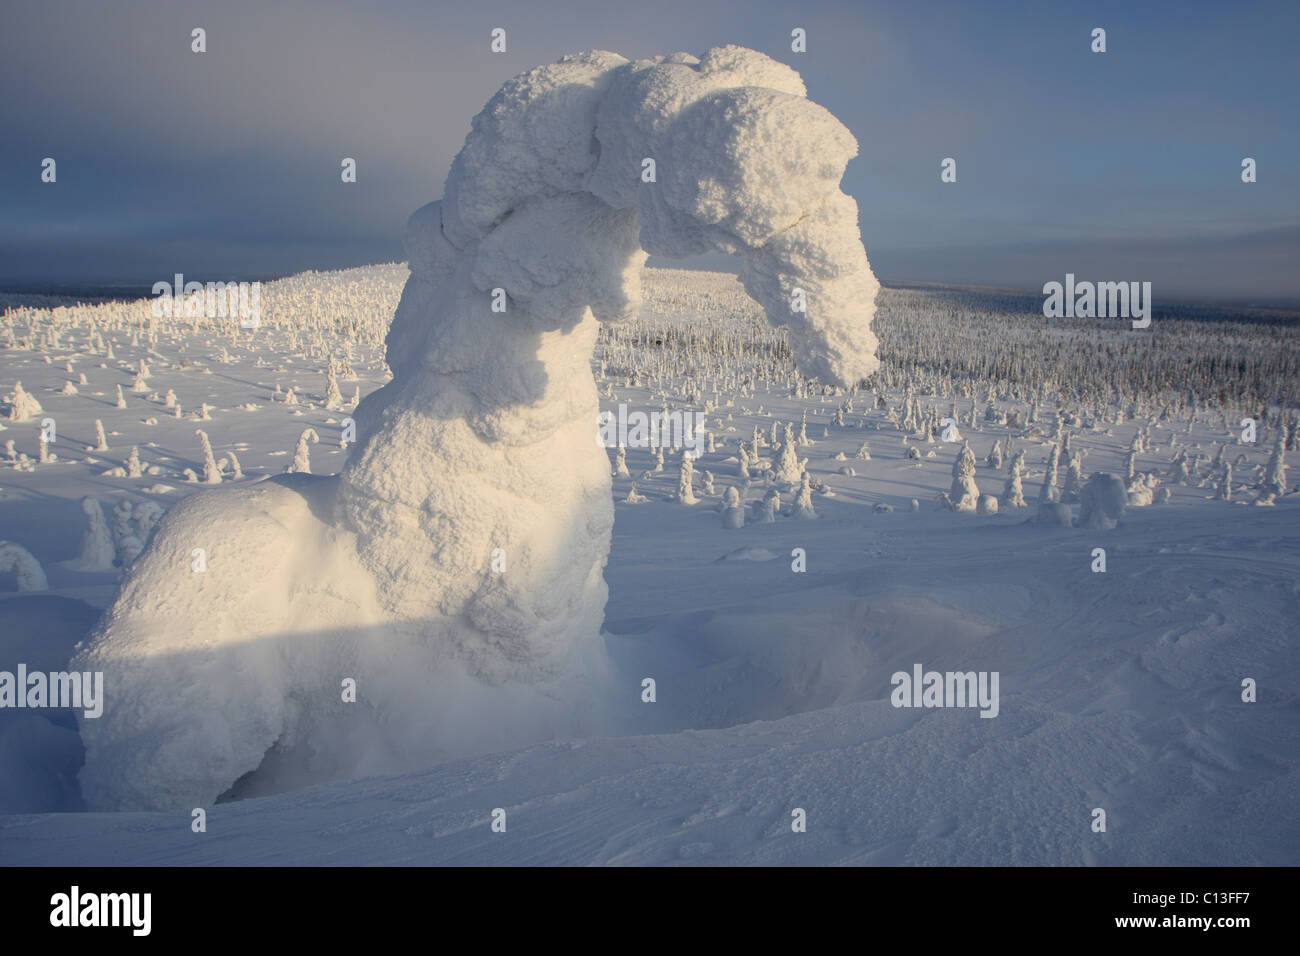 Nature's art. Snow covered trees at Riisitunturi National Park, Lapland, Finland - Stock Image